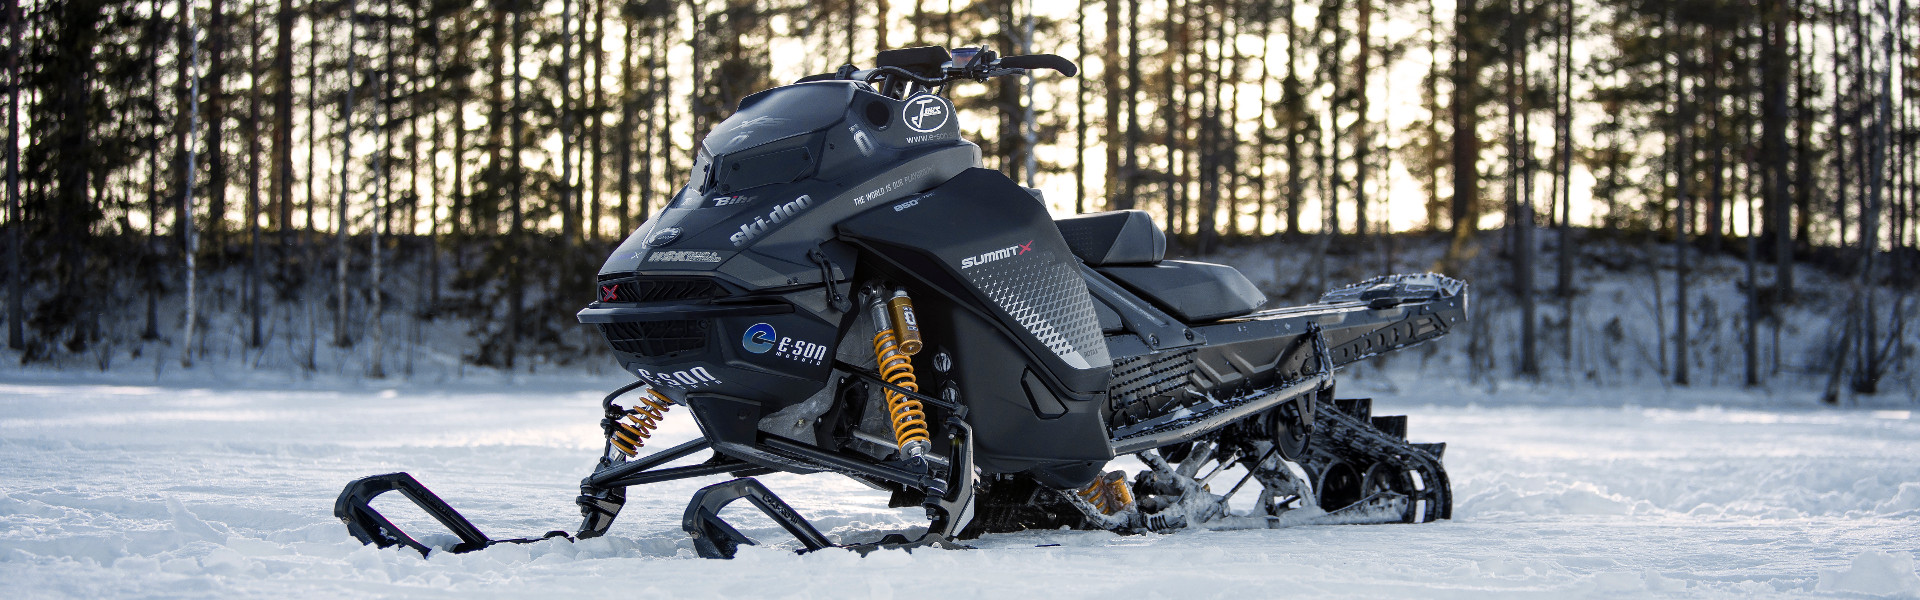 Öhlins universal front shock absorbers for snowmobiles